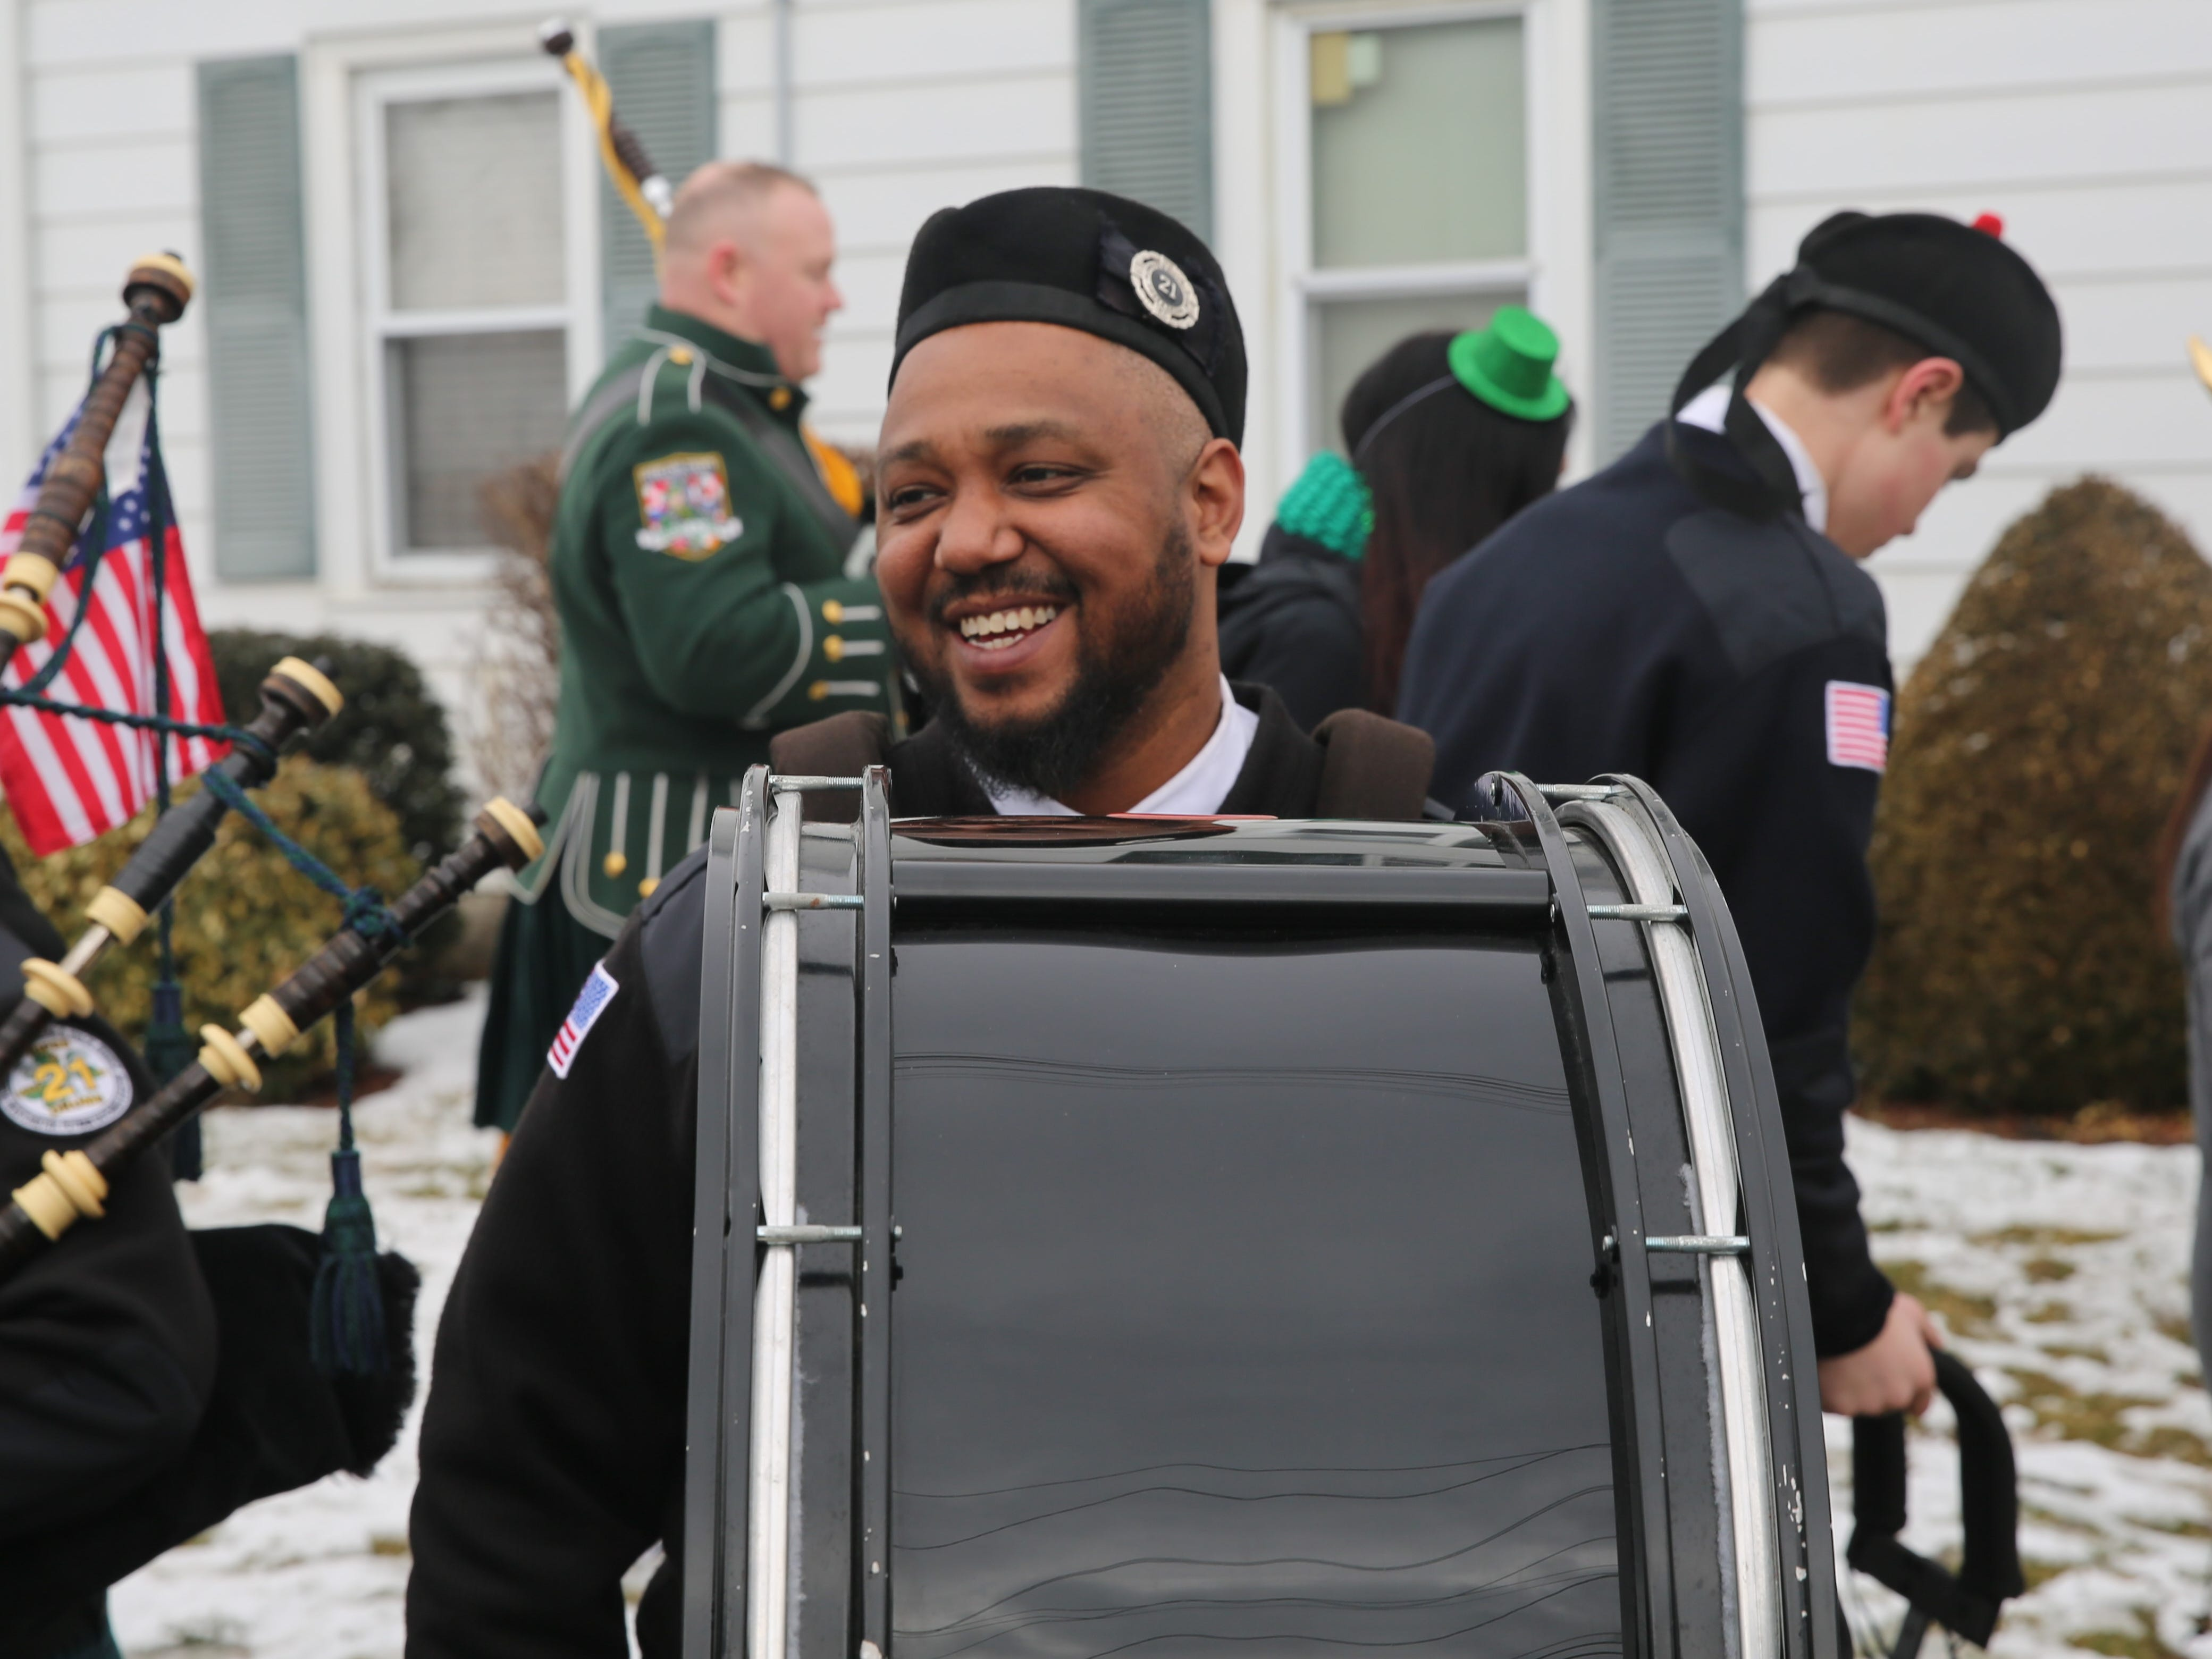 Tony Fortunato, 37, of Yonkers, warms up with Local 21 Pipes and Drums before the Dutchess County St. Patrick's Day Parade on Saturday.